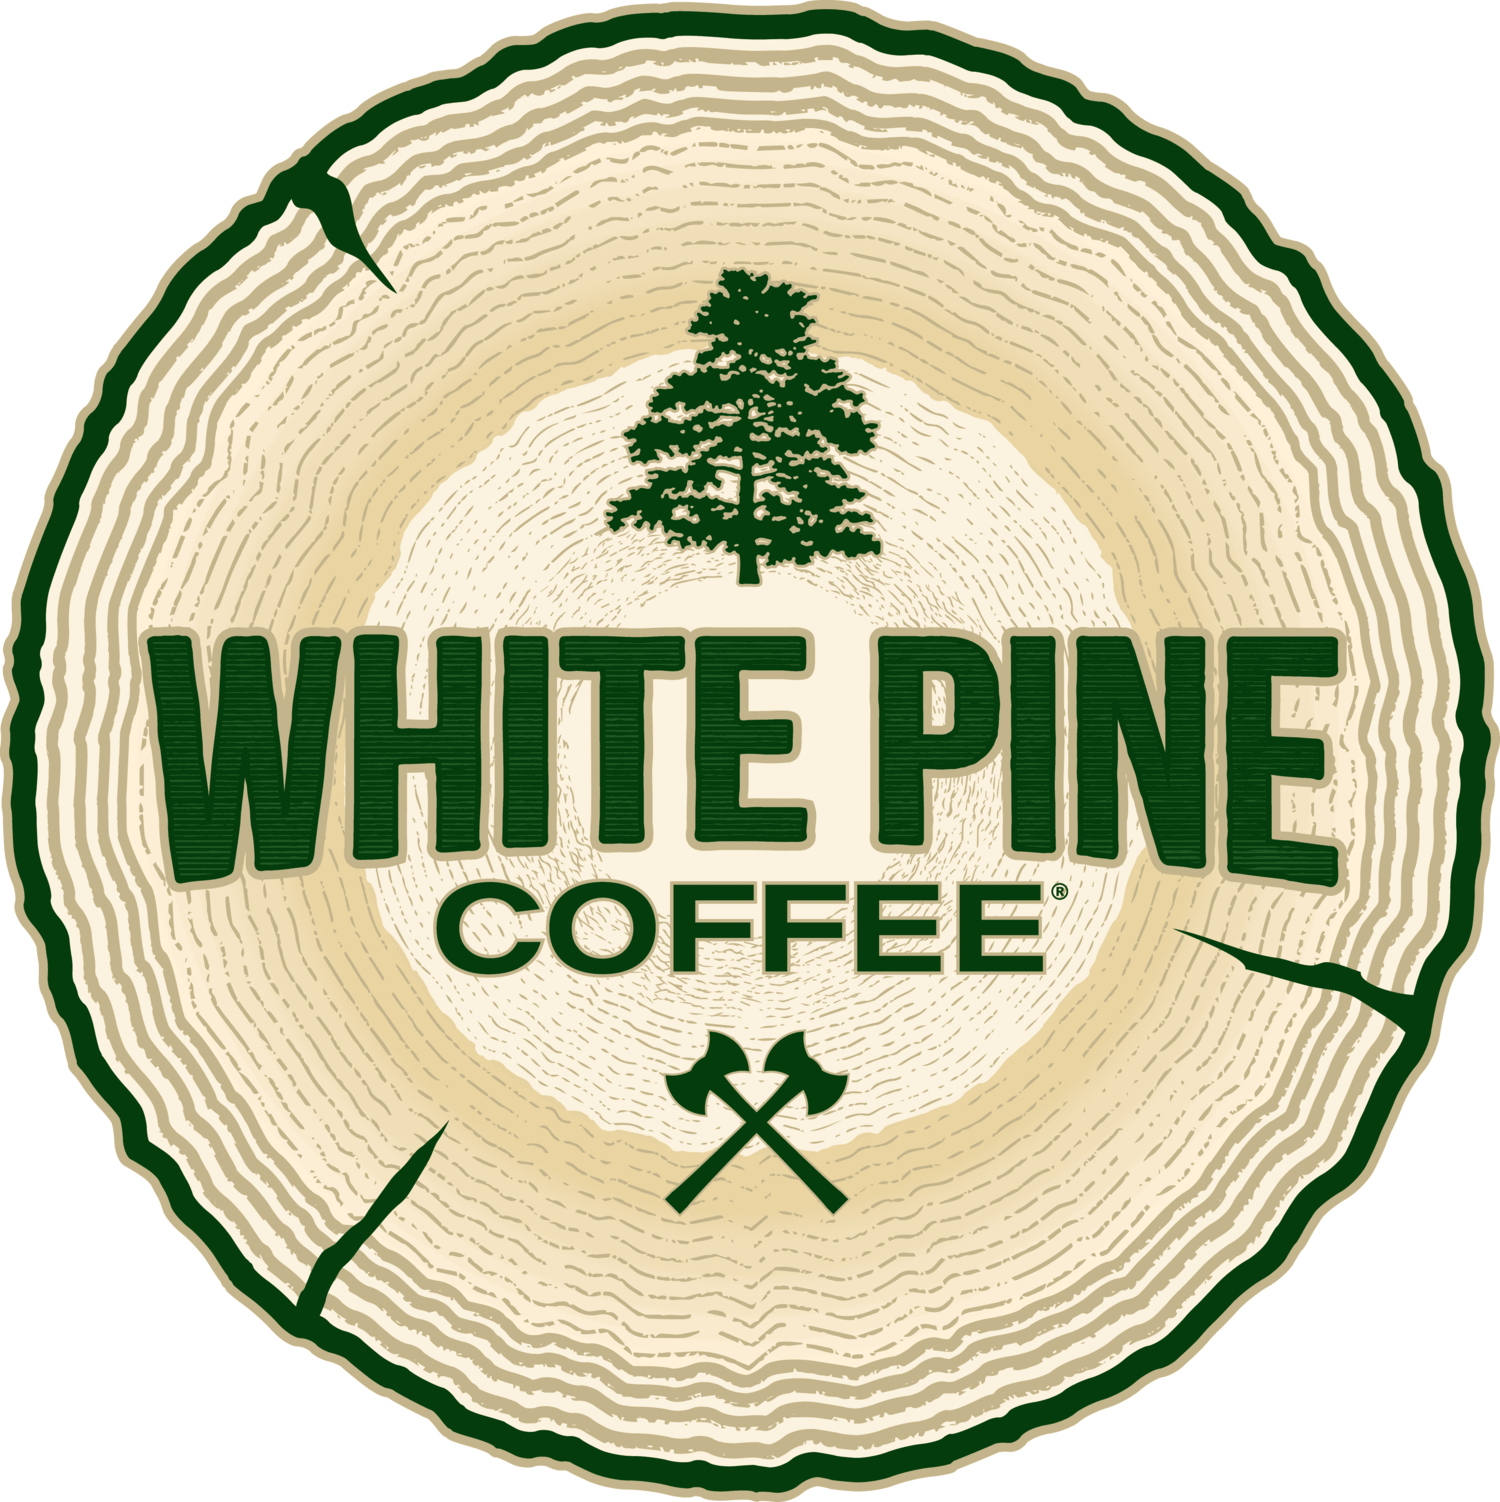 White Pine Coffee - A Michigan Micro-Roastery